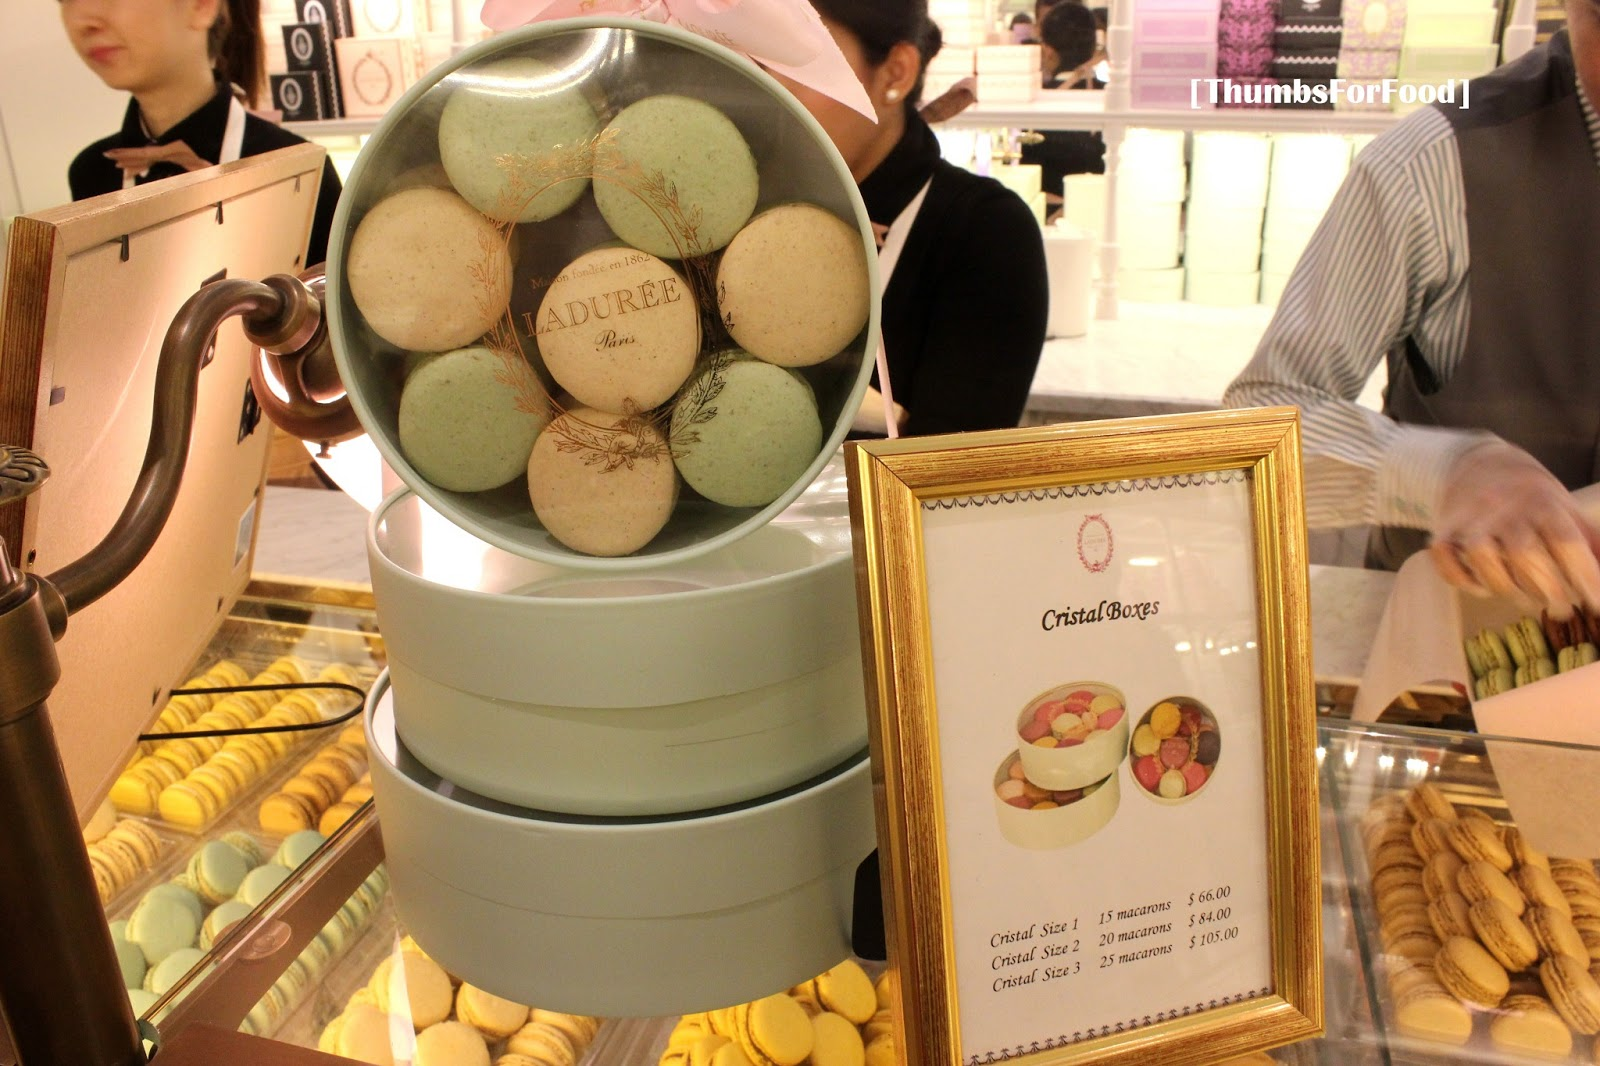 Yes This Is Their Special Gold Leaves Macaron It Around Double The Price Of A Normal I Was Surprised When Person Explained That Tasted